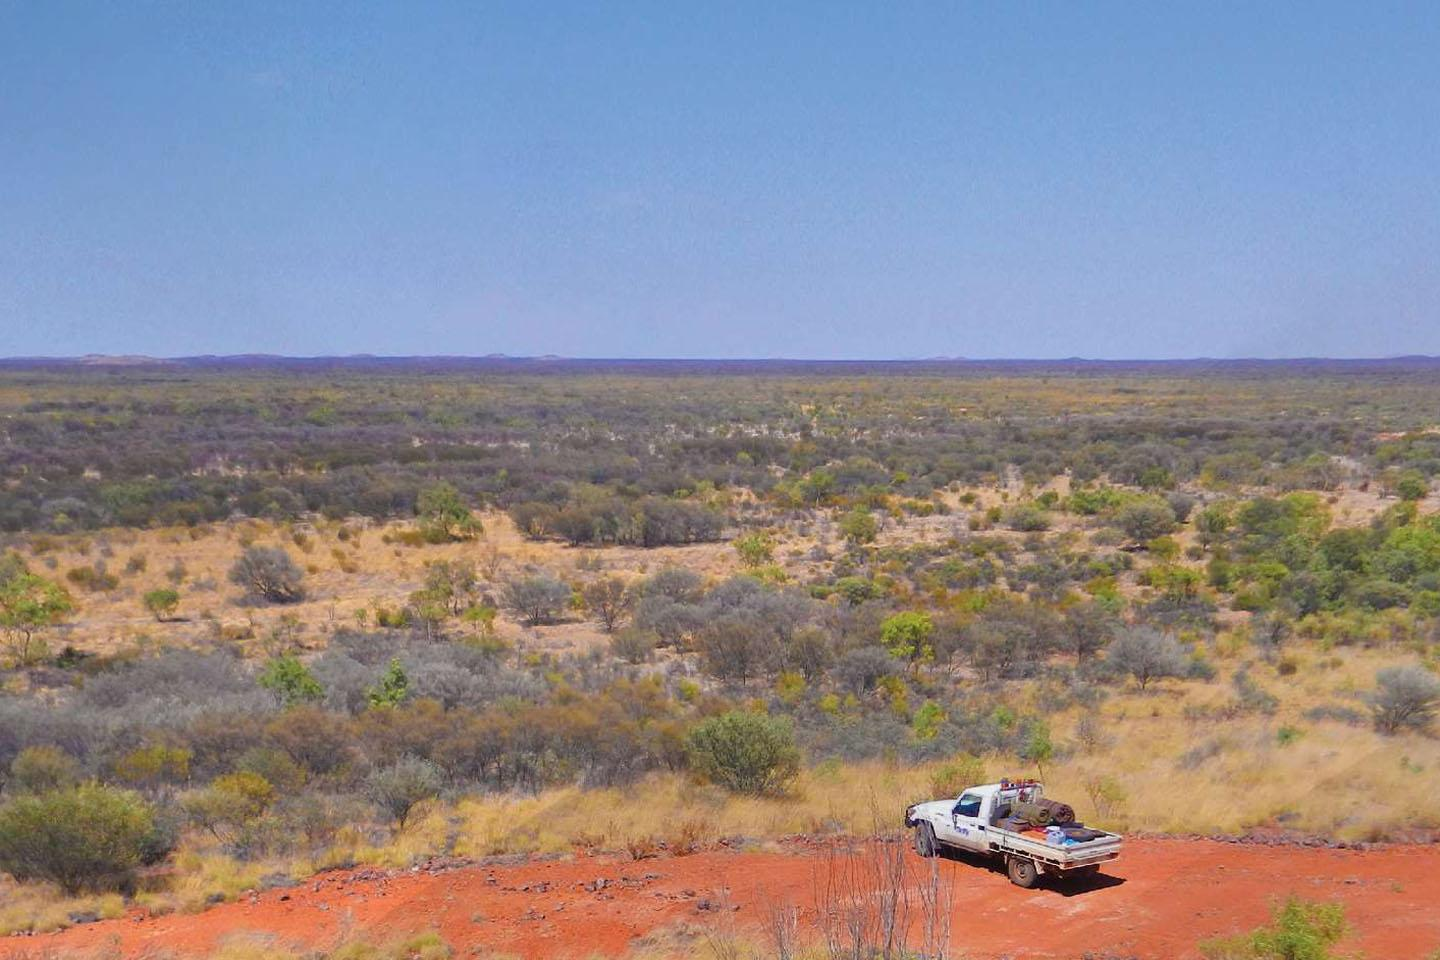 TNG poised to cut Mount Peake capex